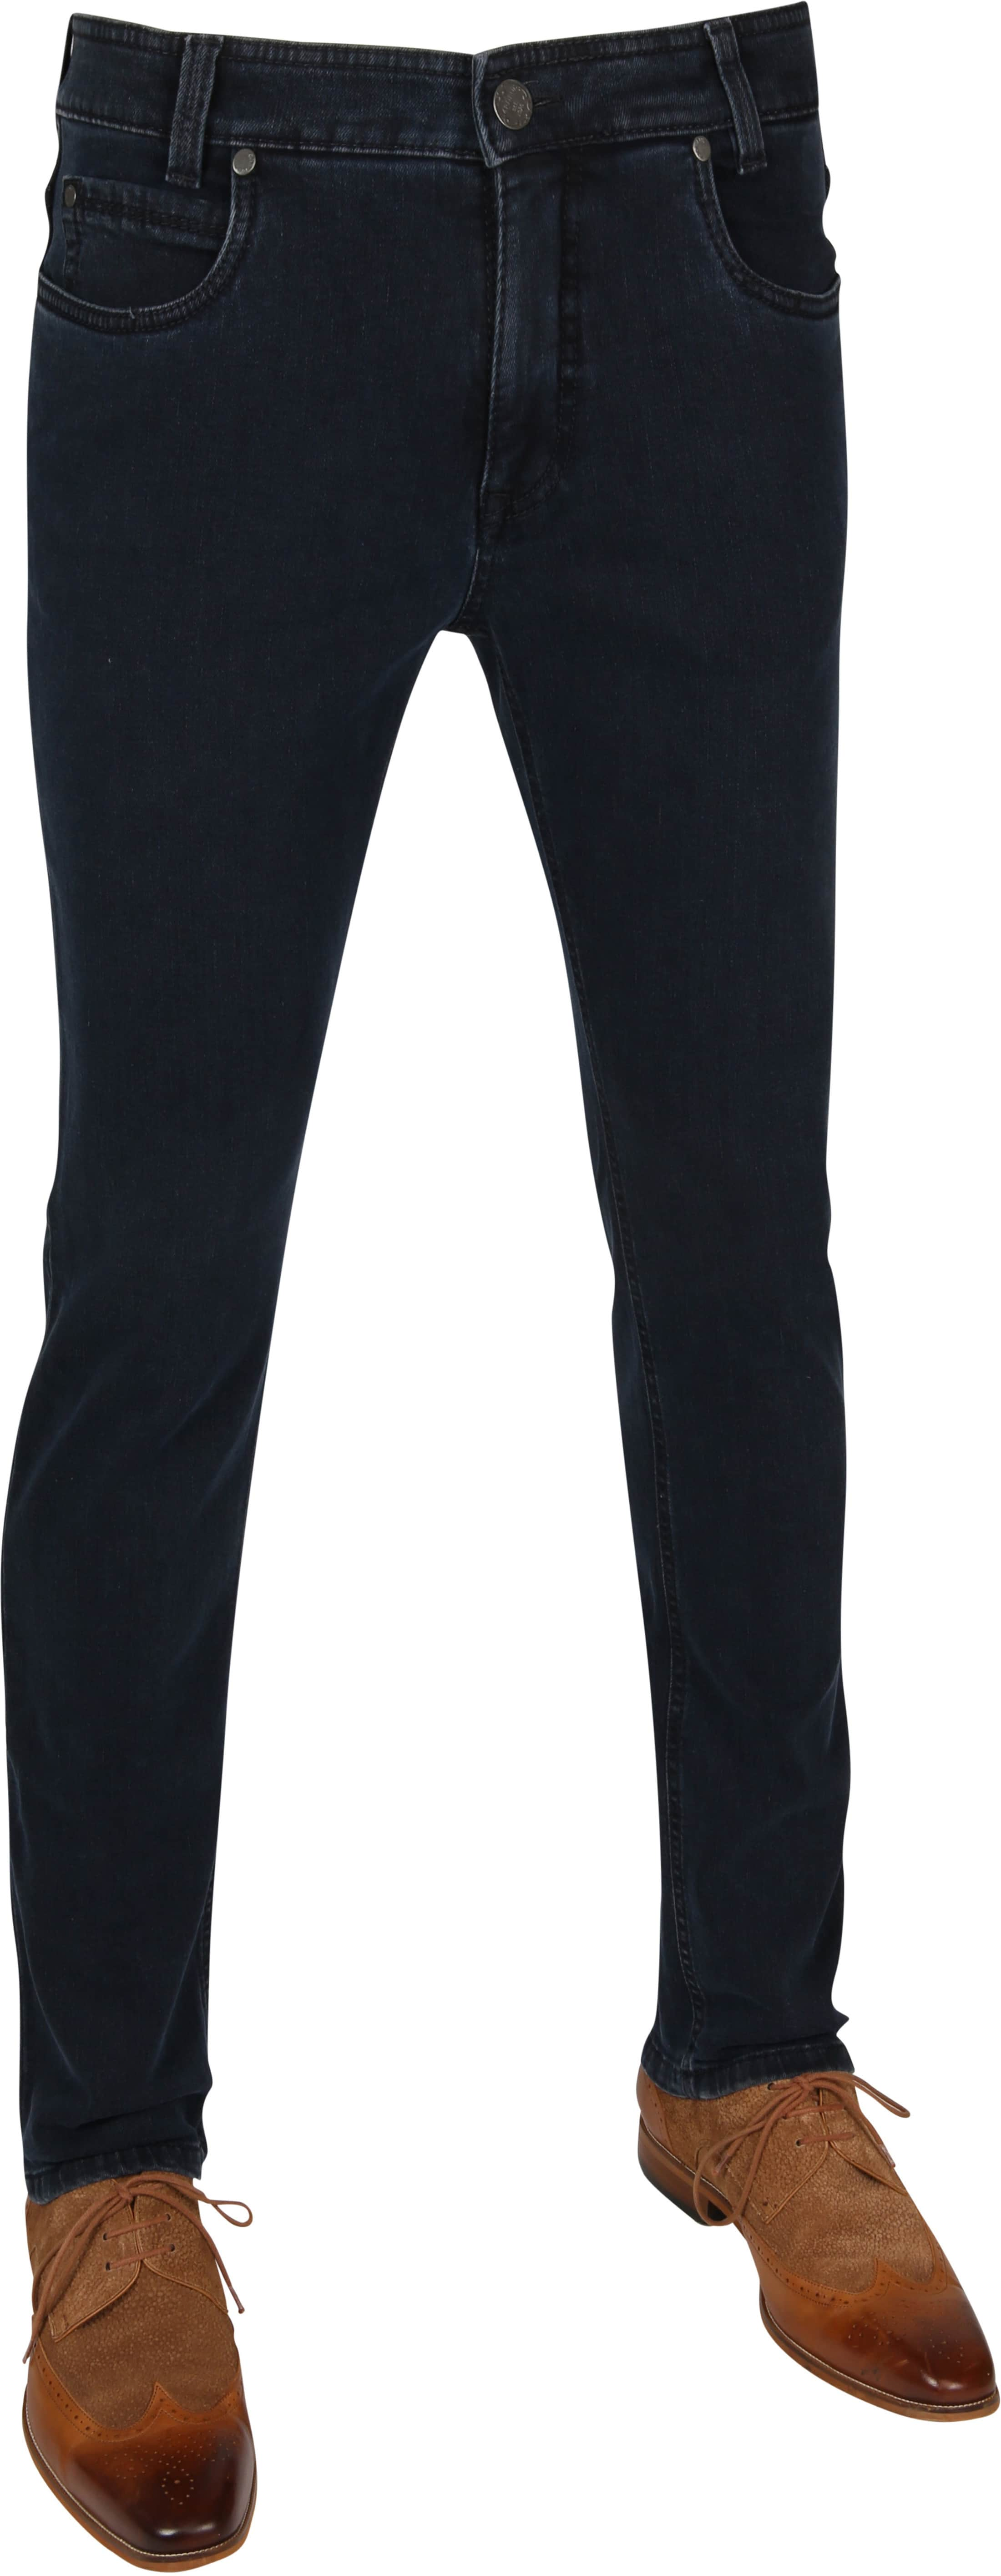 Gardeur Batu Jeans Clean Navy photo 0